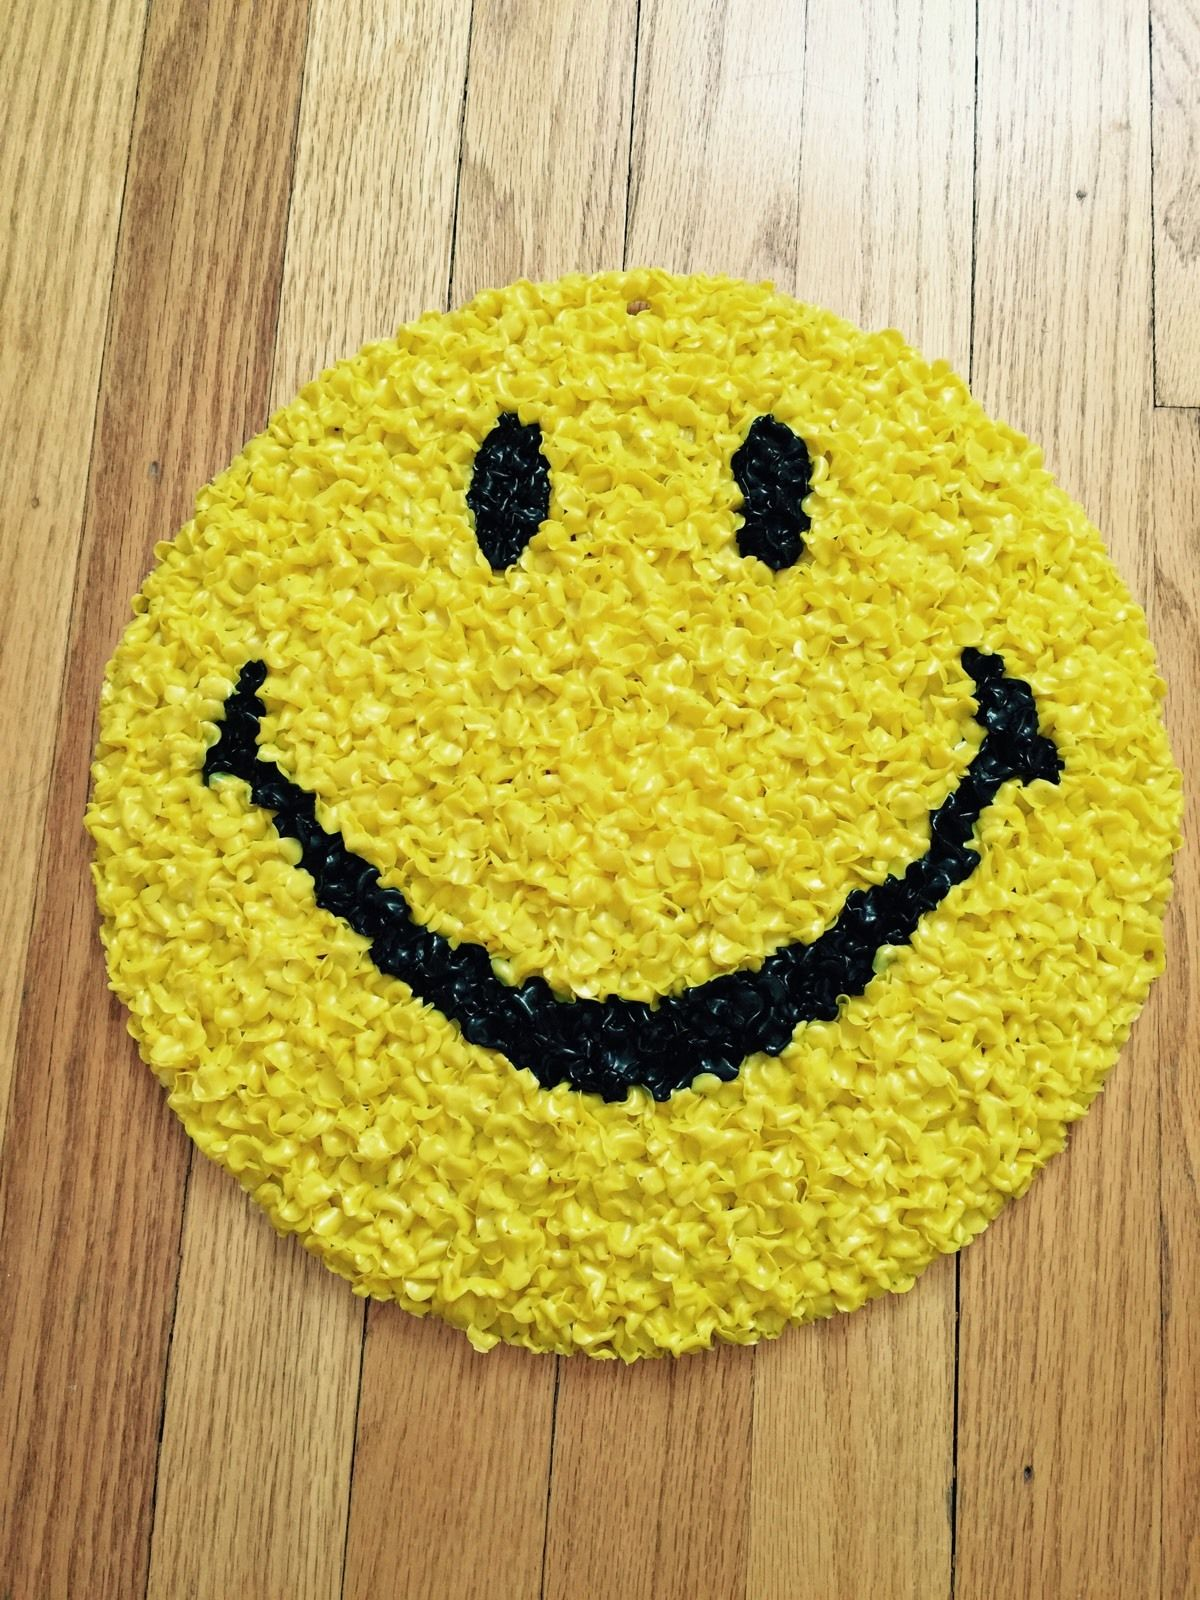 "Vintage 13"" Happy Smiley Face Melted Popcorn Plastic Have A Nice Day Retro 70s 